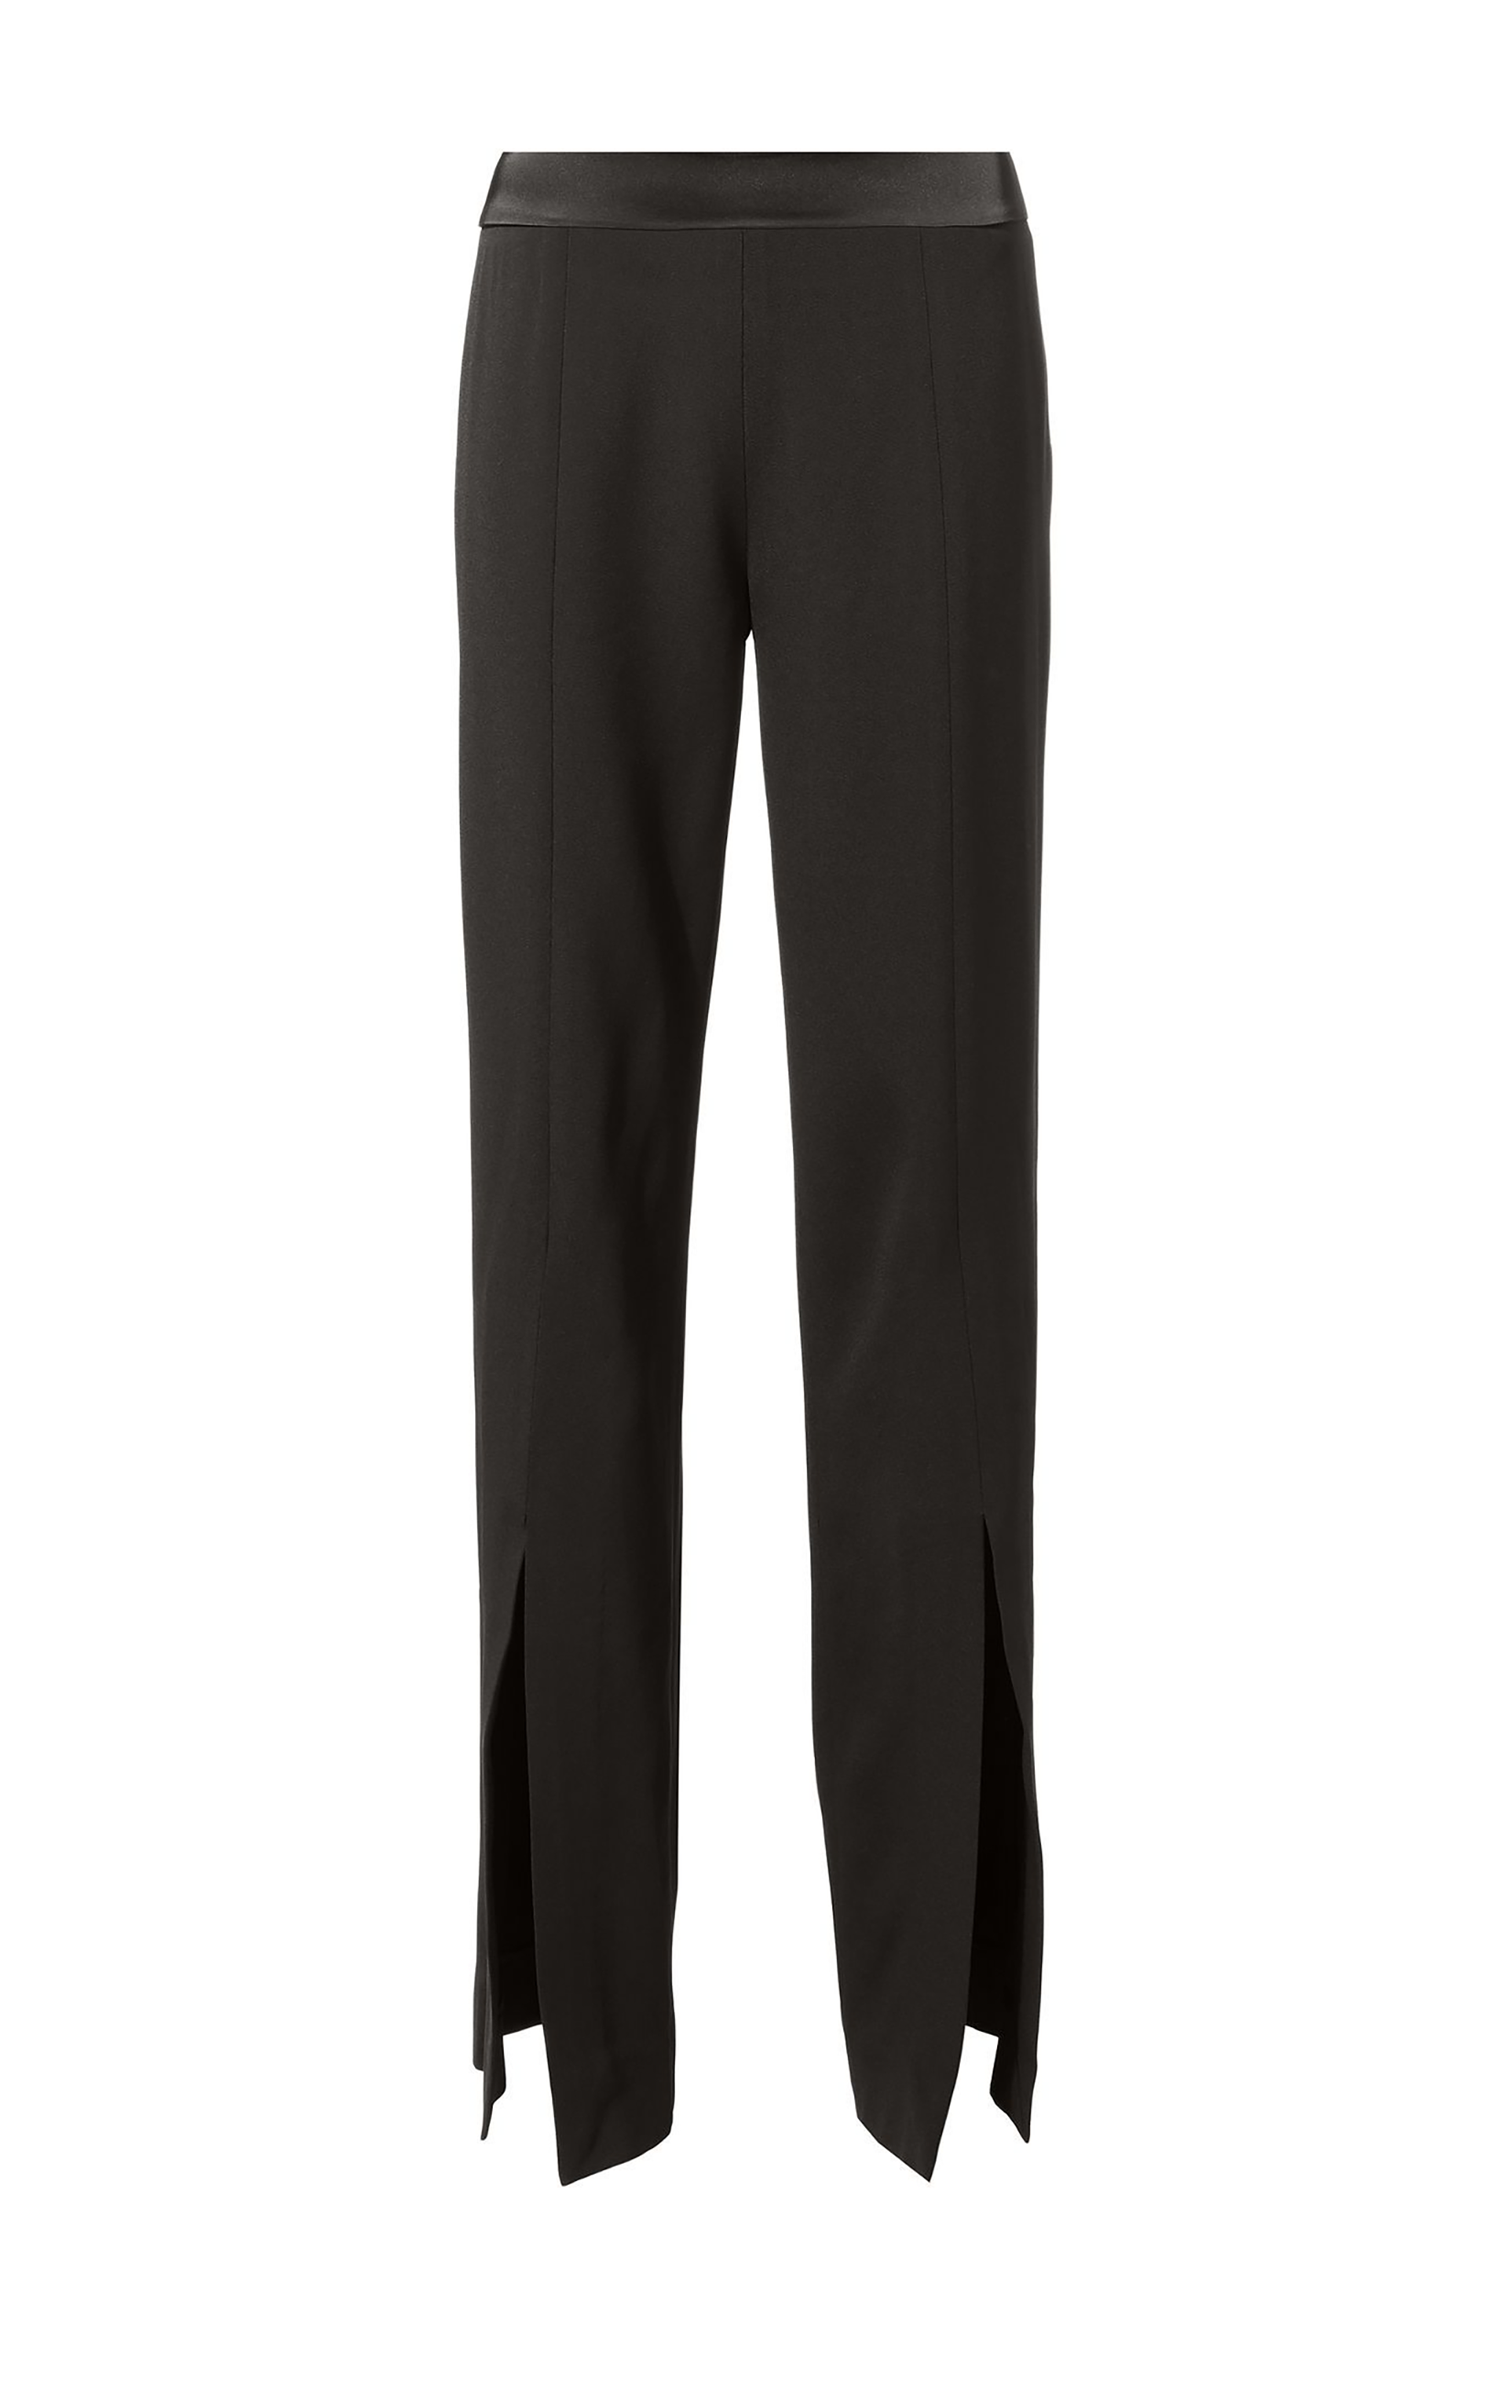 Satin Front Slit Pants Black